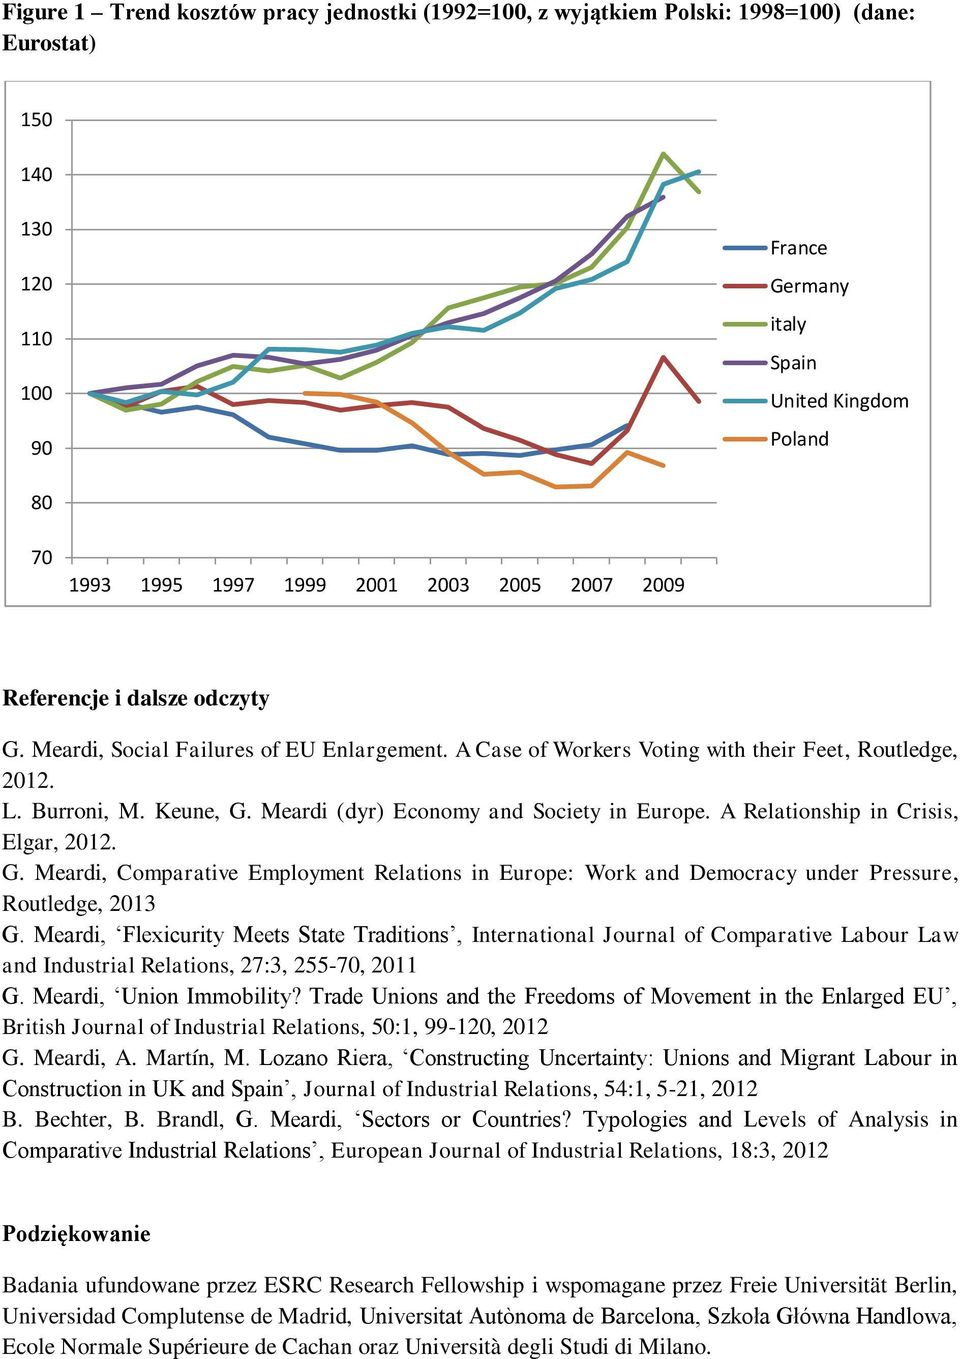 Meardi (dyr) Economy and Society in Europe. A Relationship in Crisis, Elgar, 2012. G. Meardi, Comparative Employment Relations in Europe: Work and Democracy under Pressure, Routledge, 2013 G.